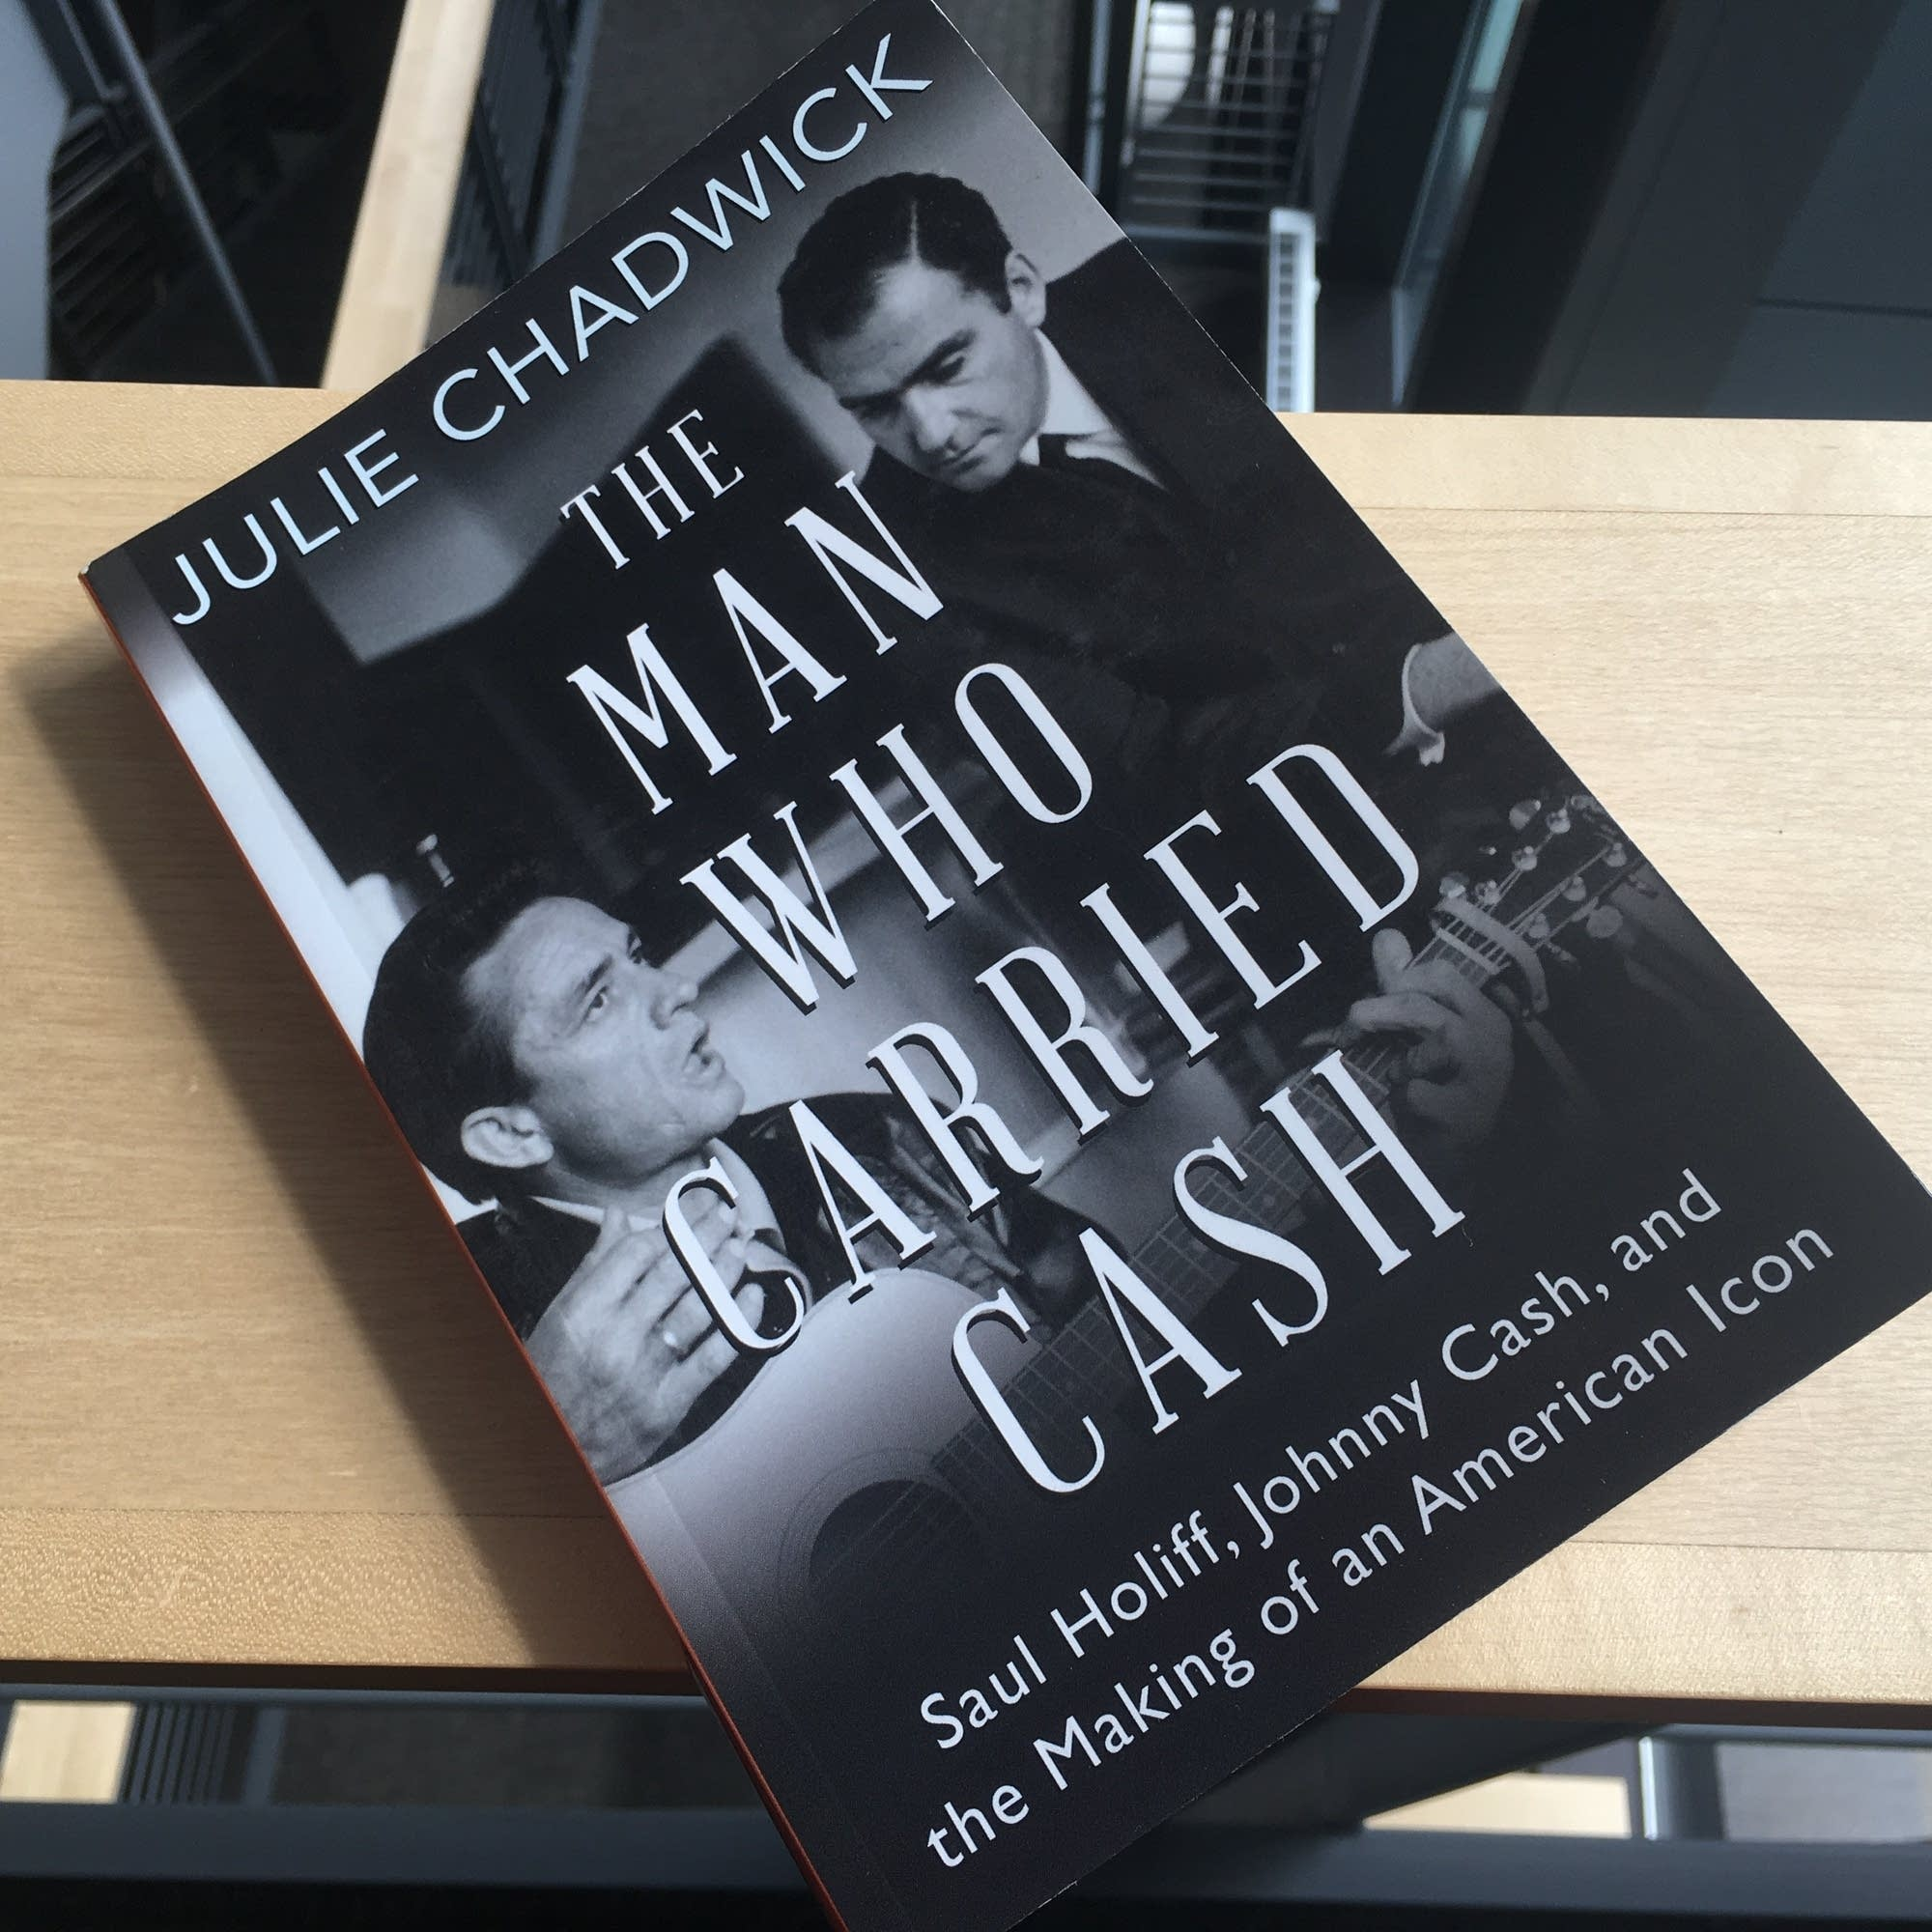 Julie Chadwick's 'The Man Who Carried Cash.'